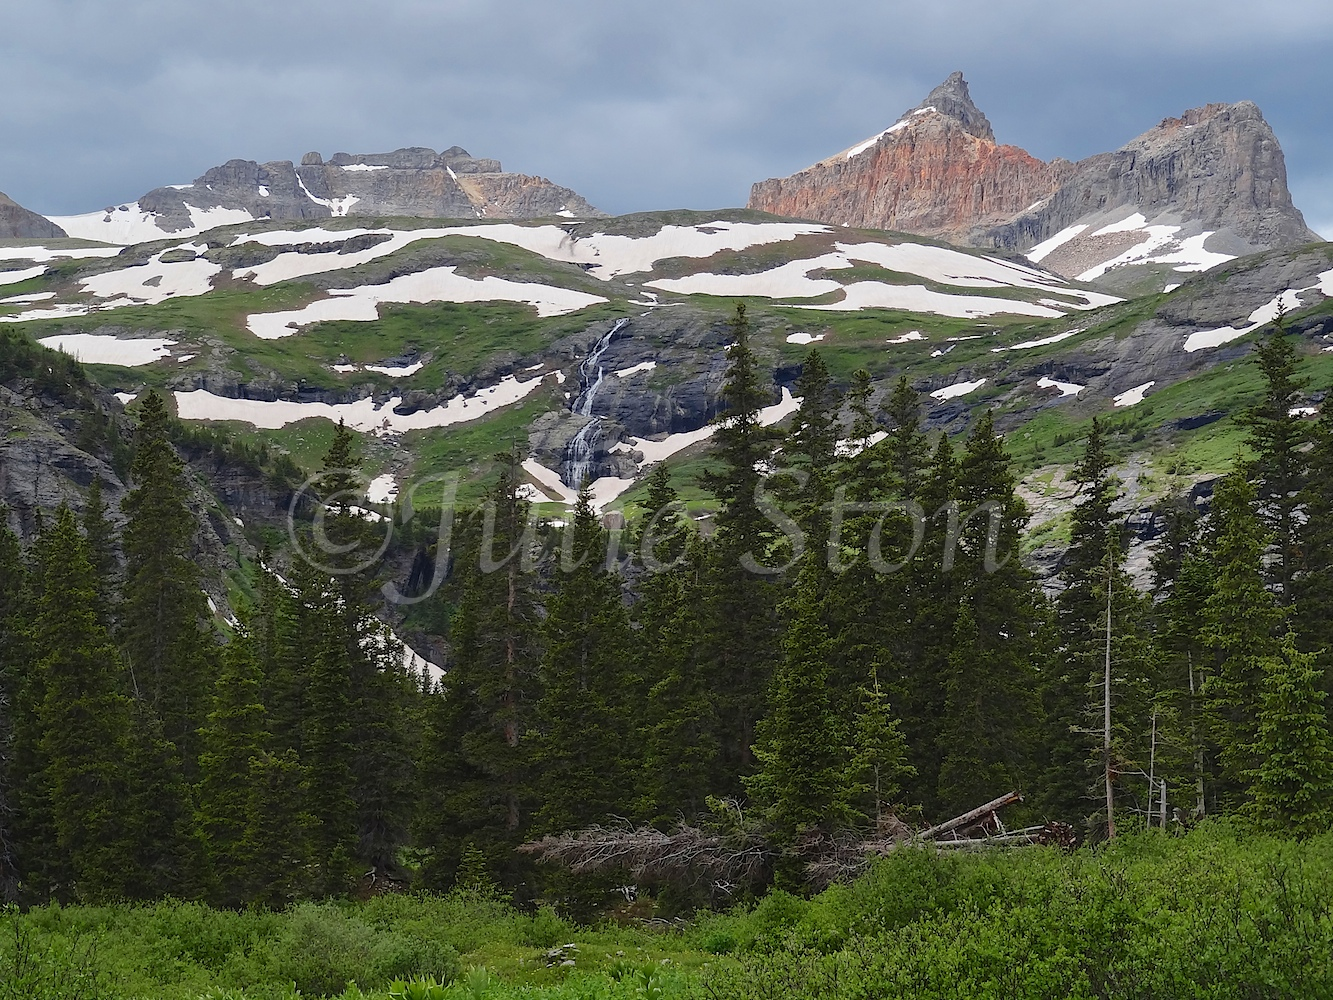 Lower Ice Lakes Basin 2011